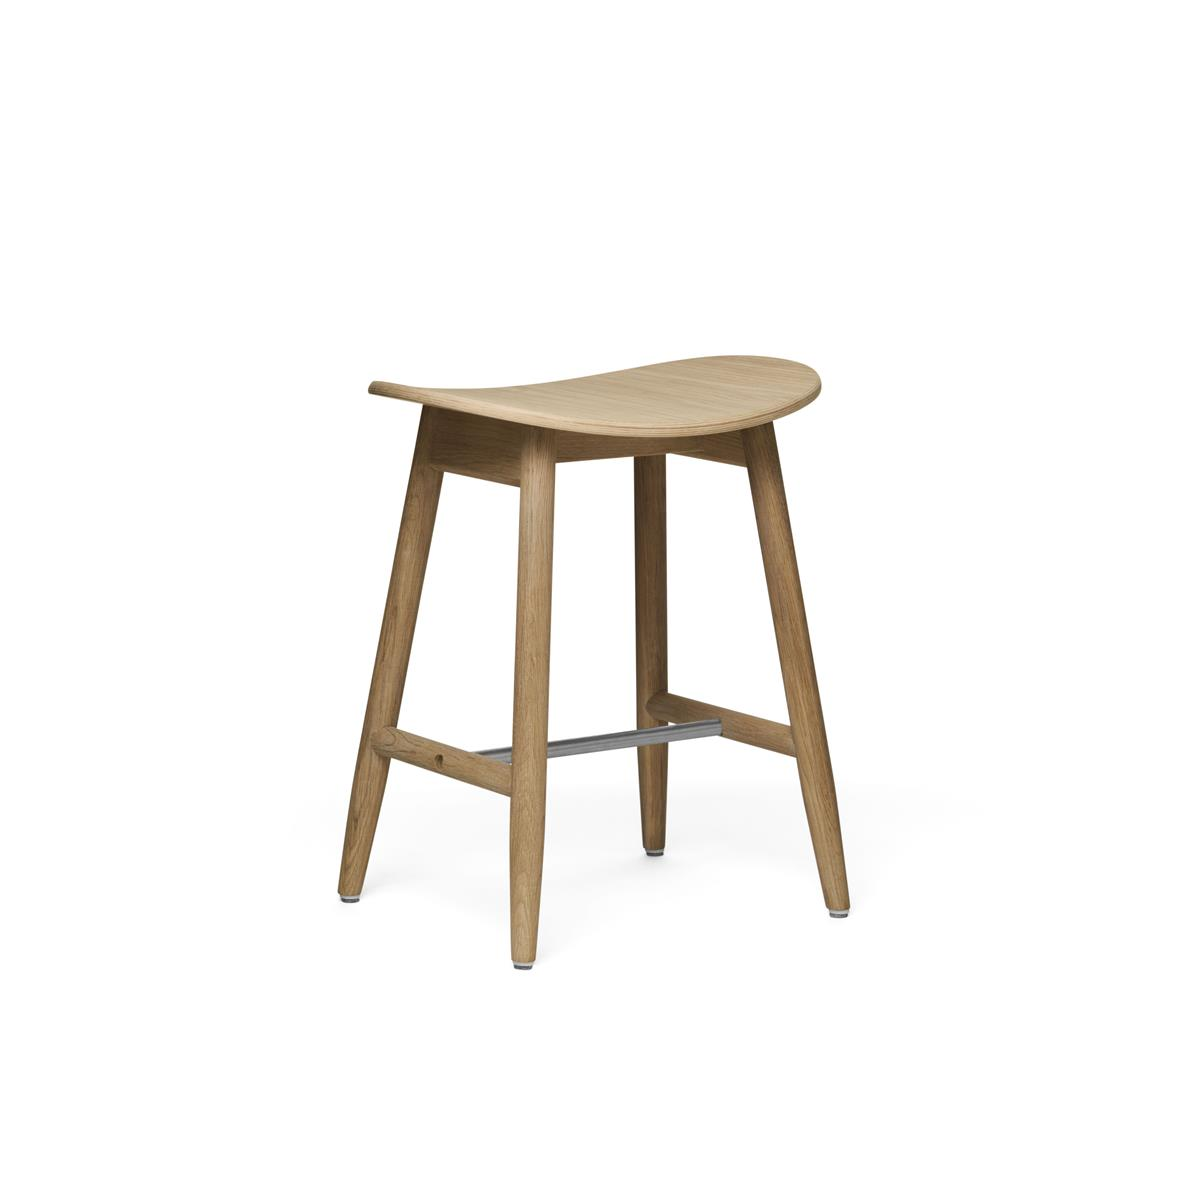 Icha Stool - Natural Oak